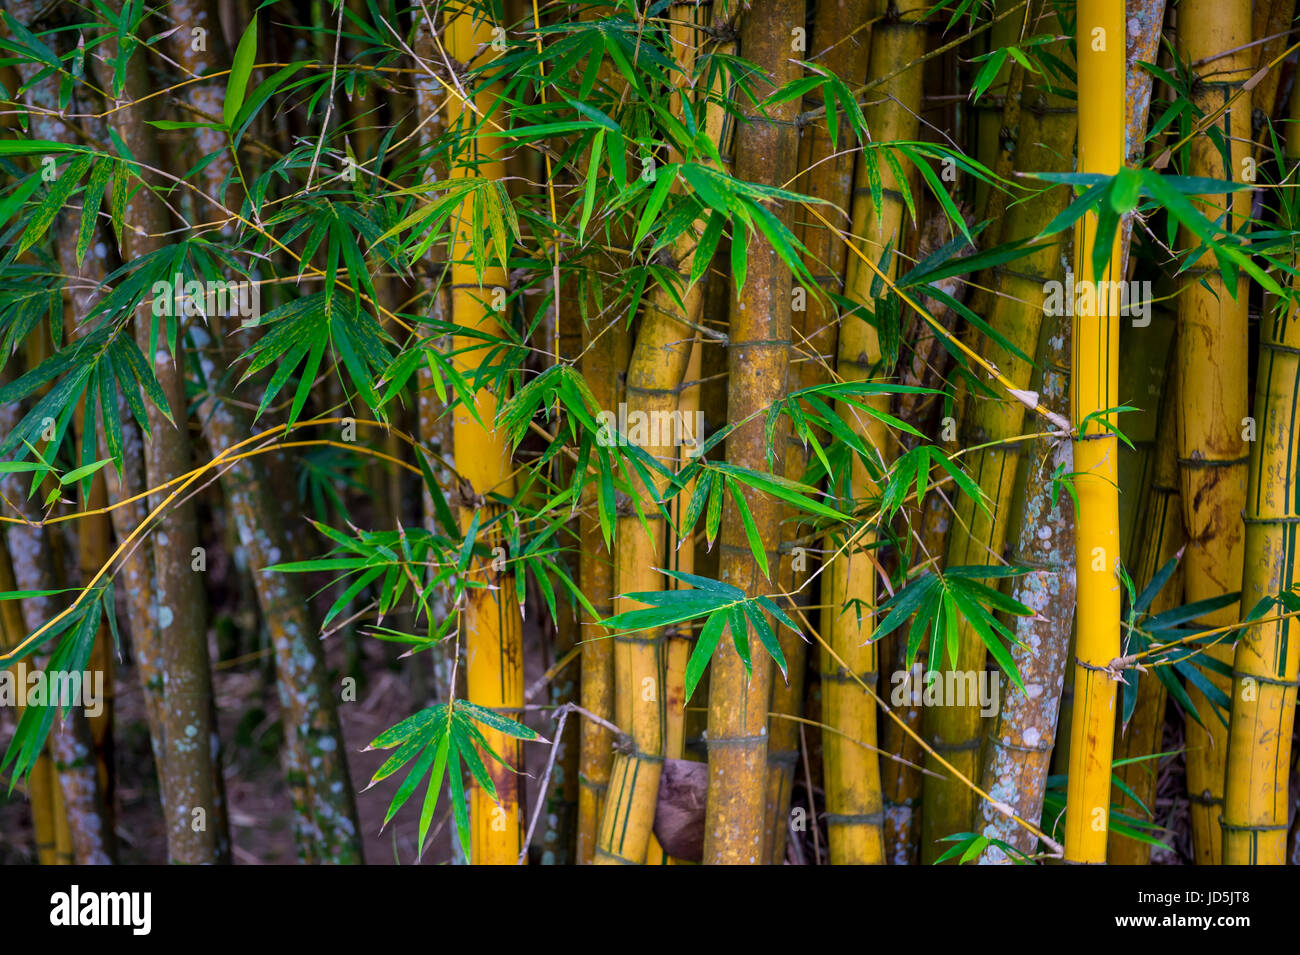 Sustainable eco-friendly background of thicket of weathered bamboo trees full frame horizontal - Stock Image